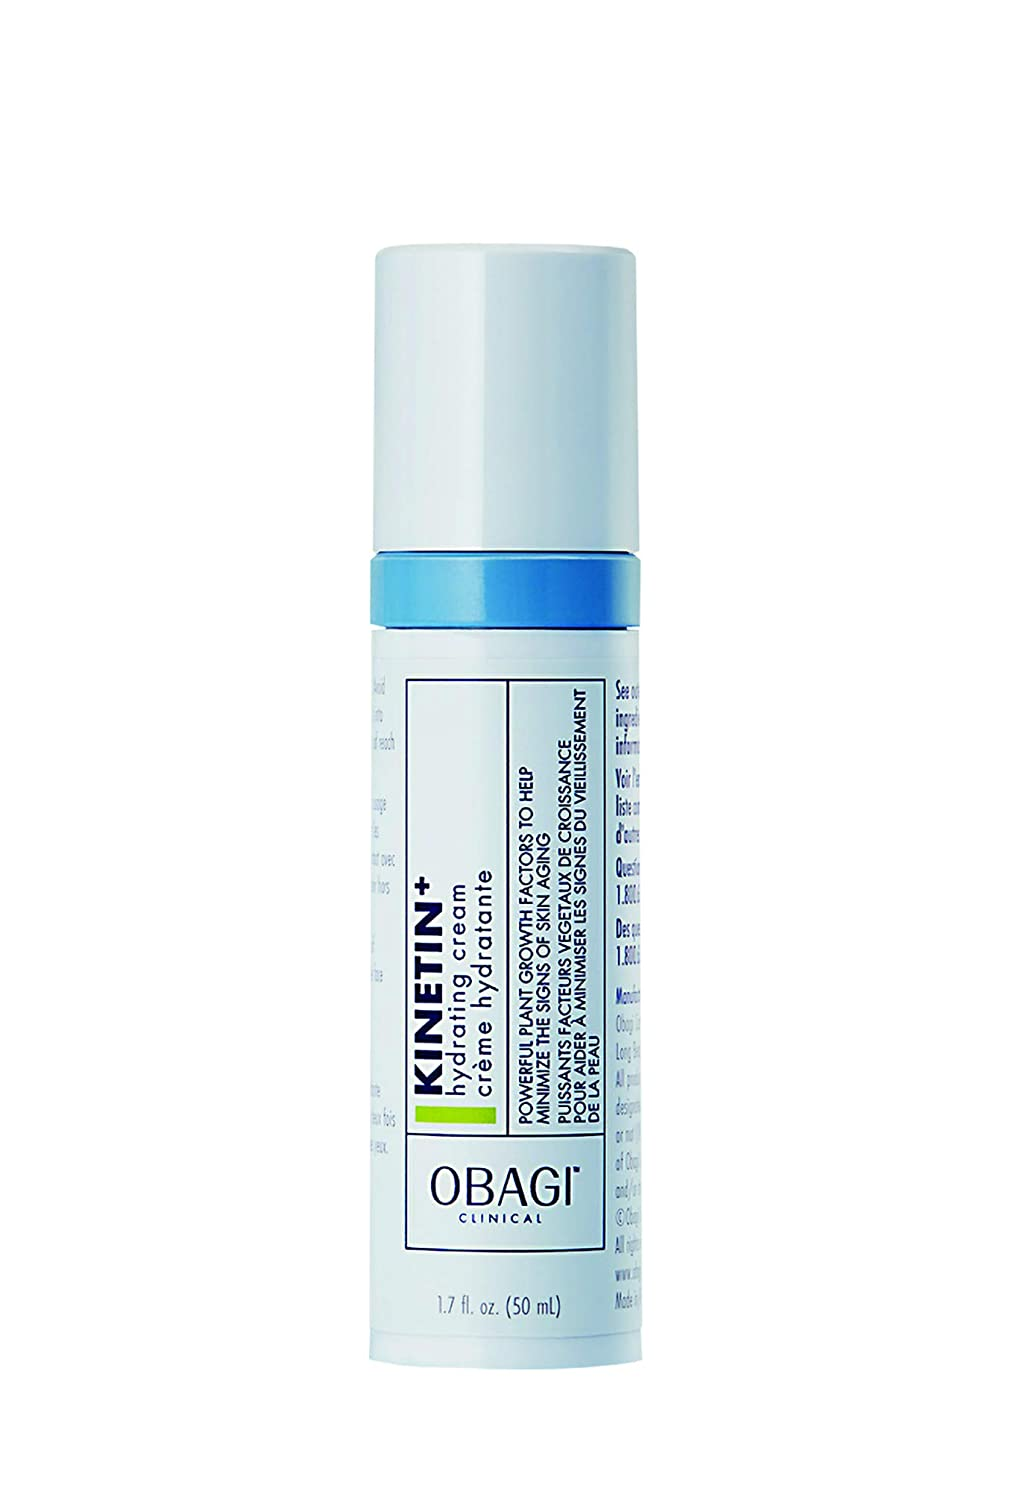 Obagi Clinical Kinetin+ Hydrating Cream 1.7 Fl Oz